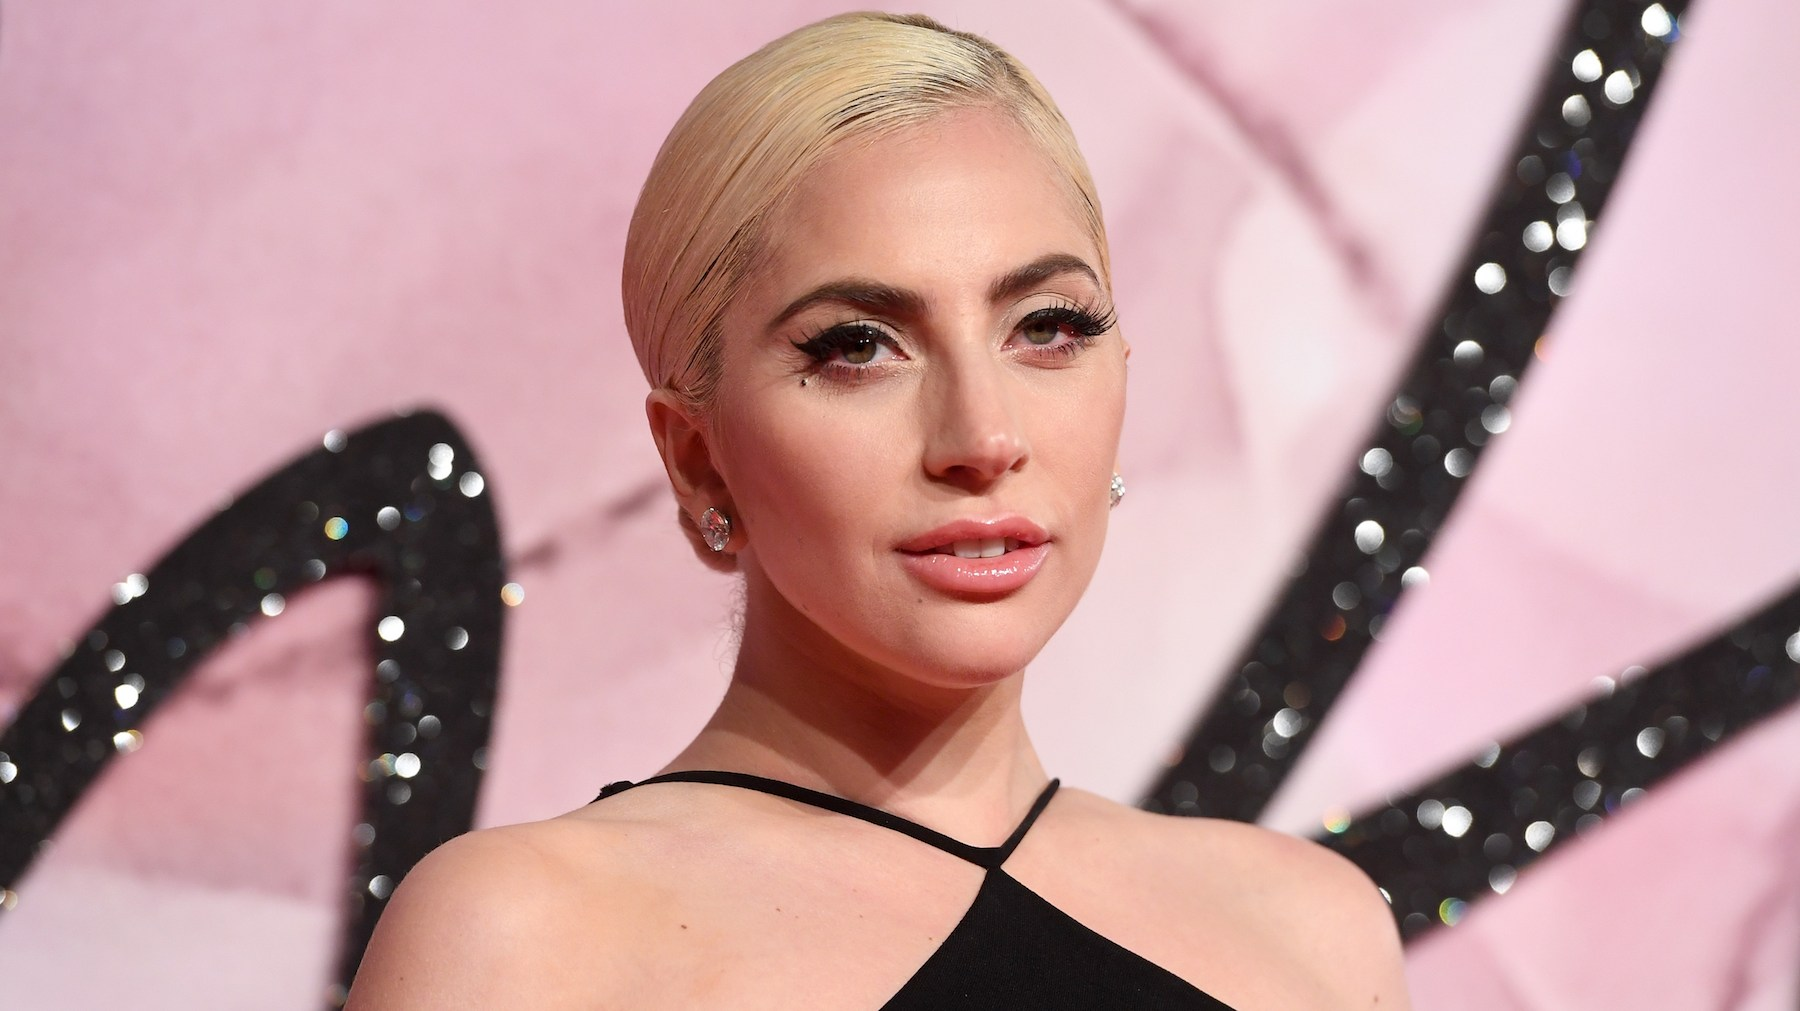 Lady Gaga Gets Subpoena to Testify in Kesha Lawsuit With Dr. Luke